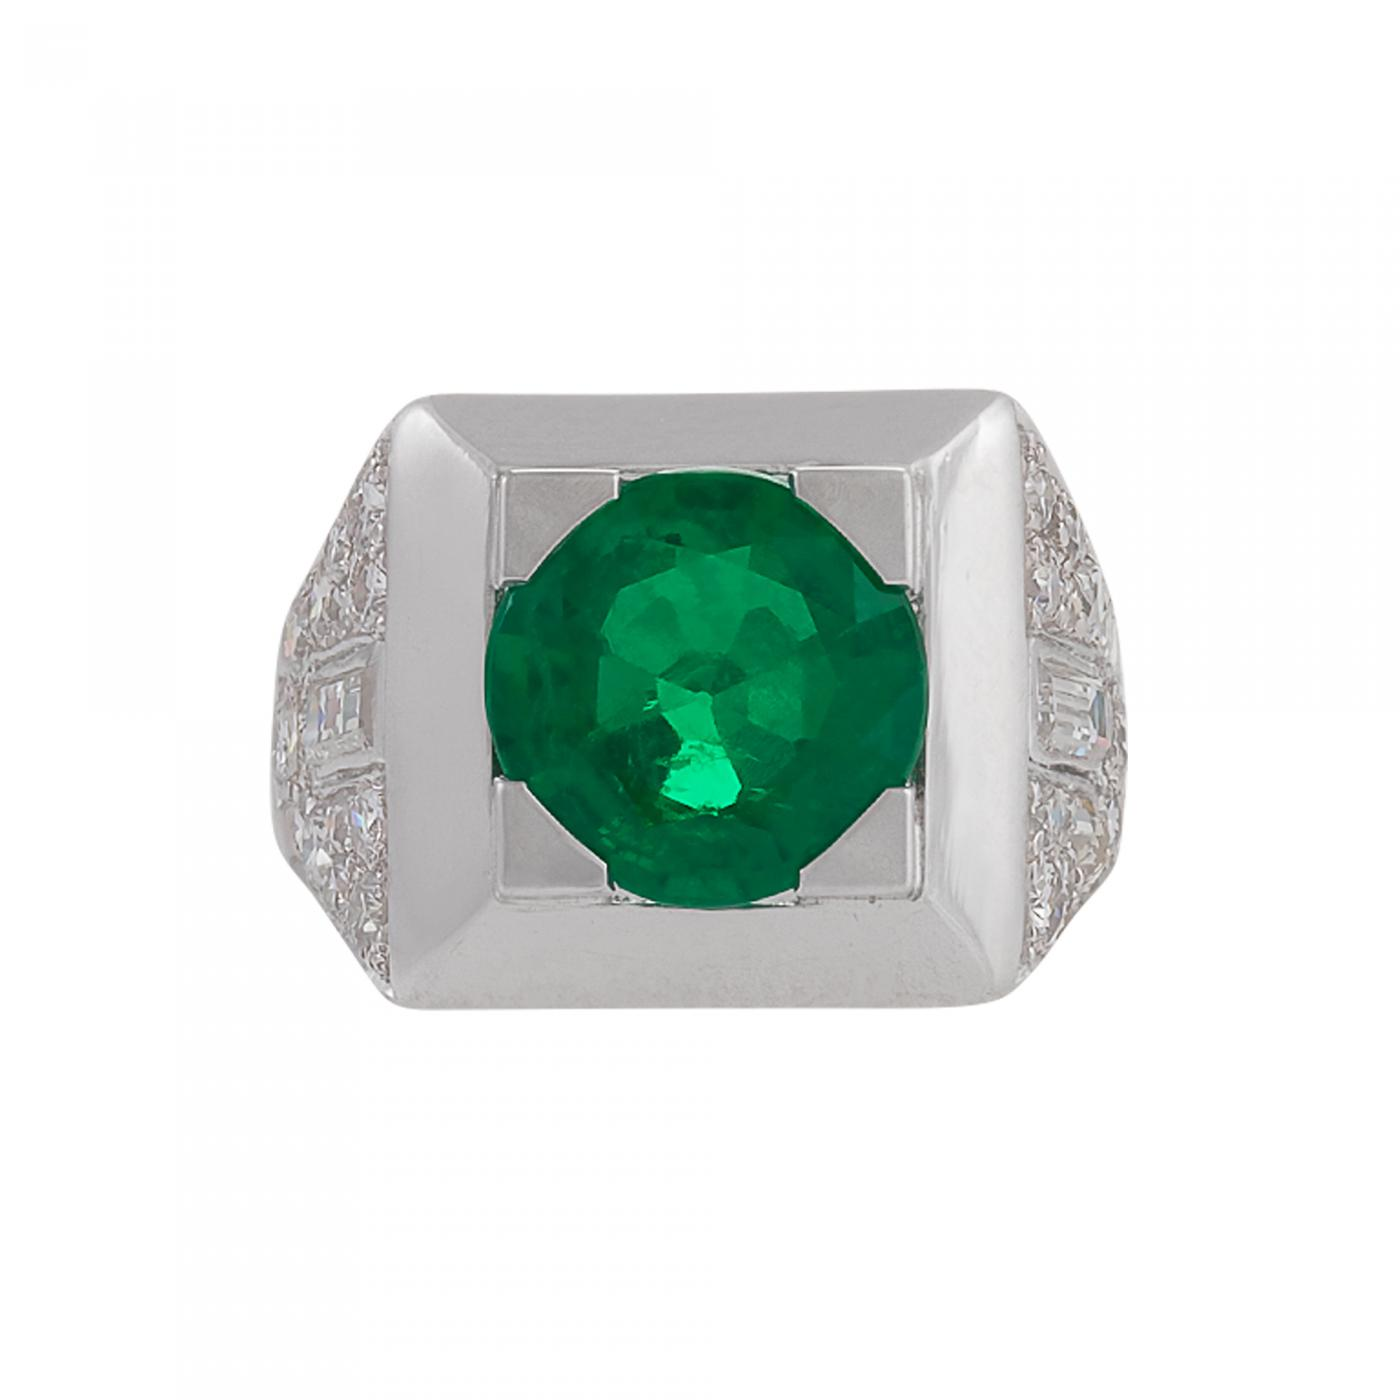 emerald products band deco envy size cartier art eternity chrono platinum antique